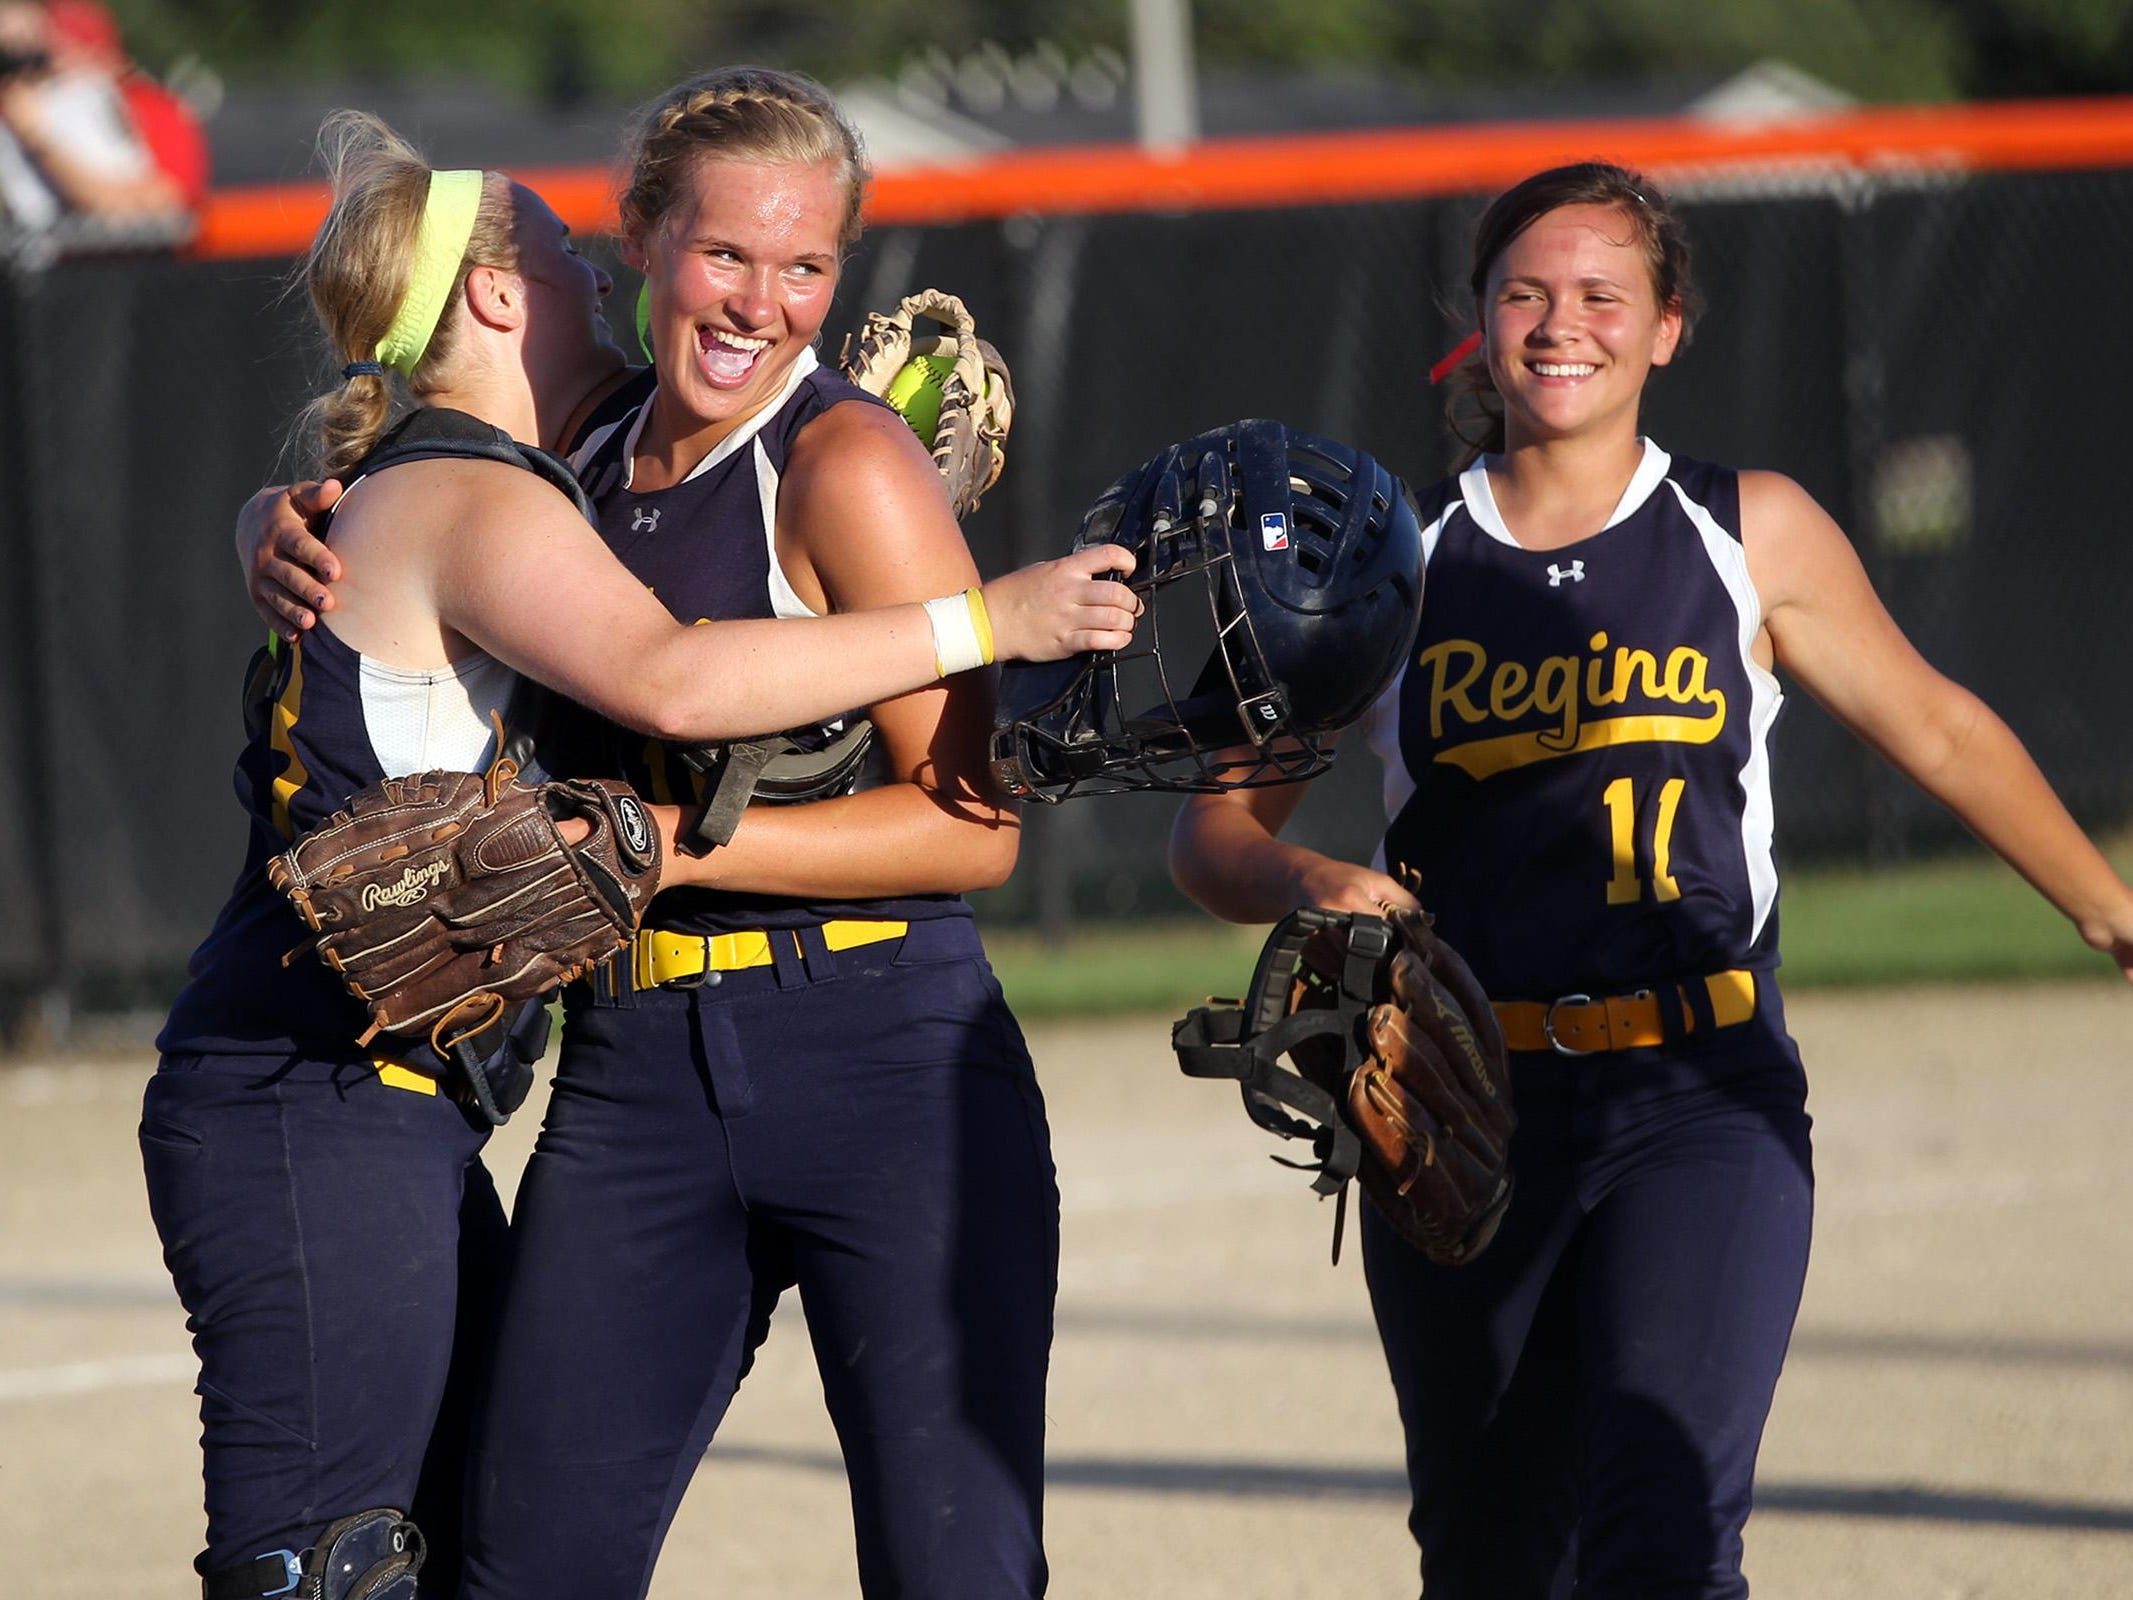 Regina pitcher Sarah Lehman, center, gets a hug from catcher Morgen Goedken following the Regals' Class 2A regional championship victory against Collins-Maxwell/Baxter in Grinnell on Monday. Regina won 5-1 to head to the state tournament.